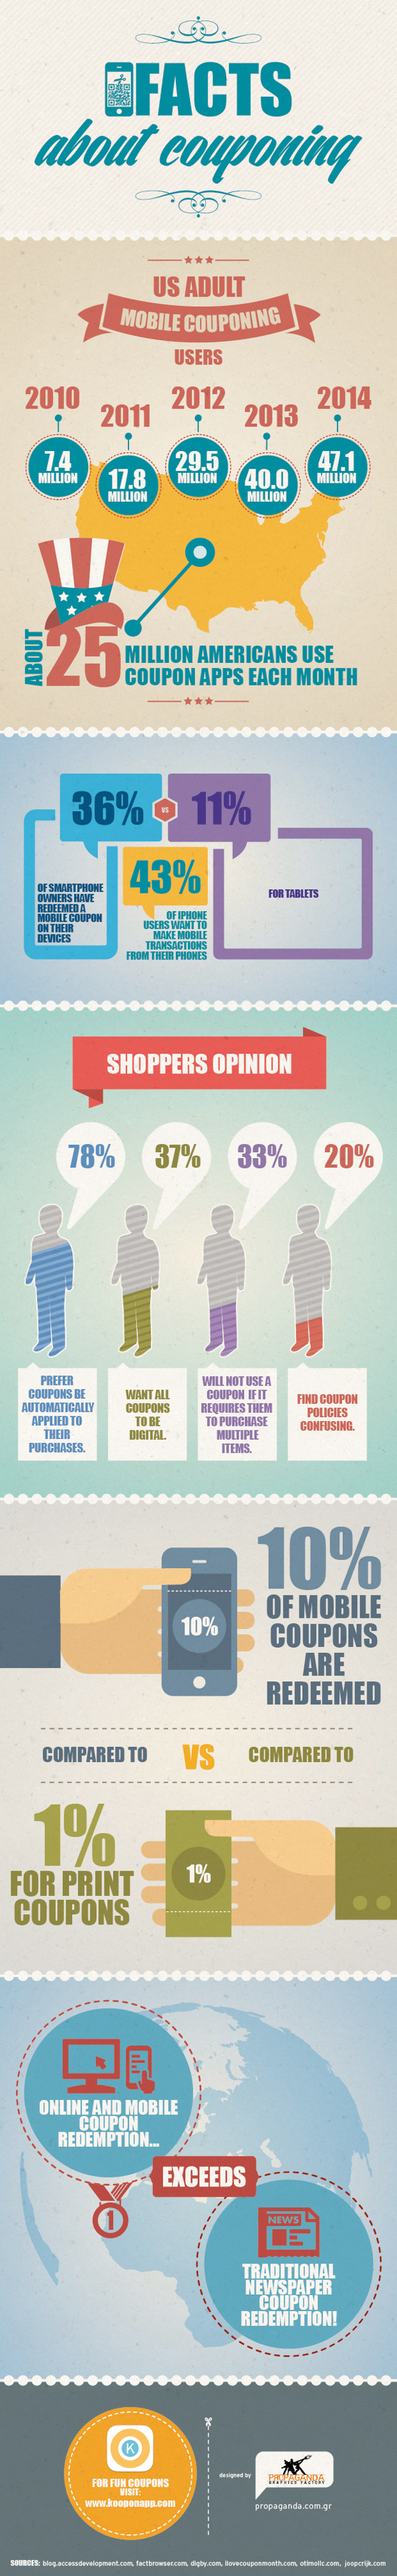 How Consumers Are Using Mobile Coupons Infographic